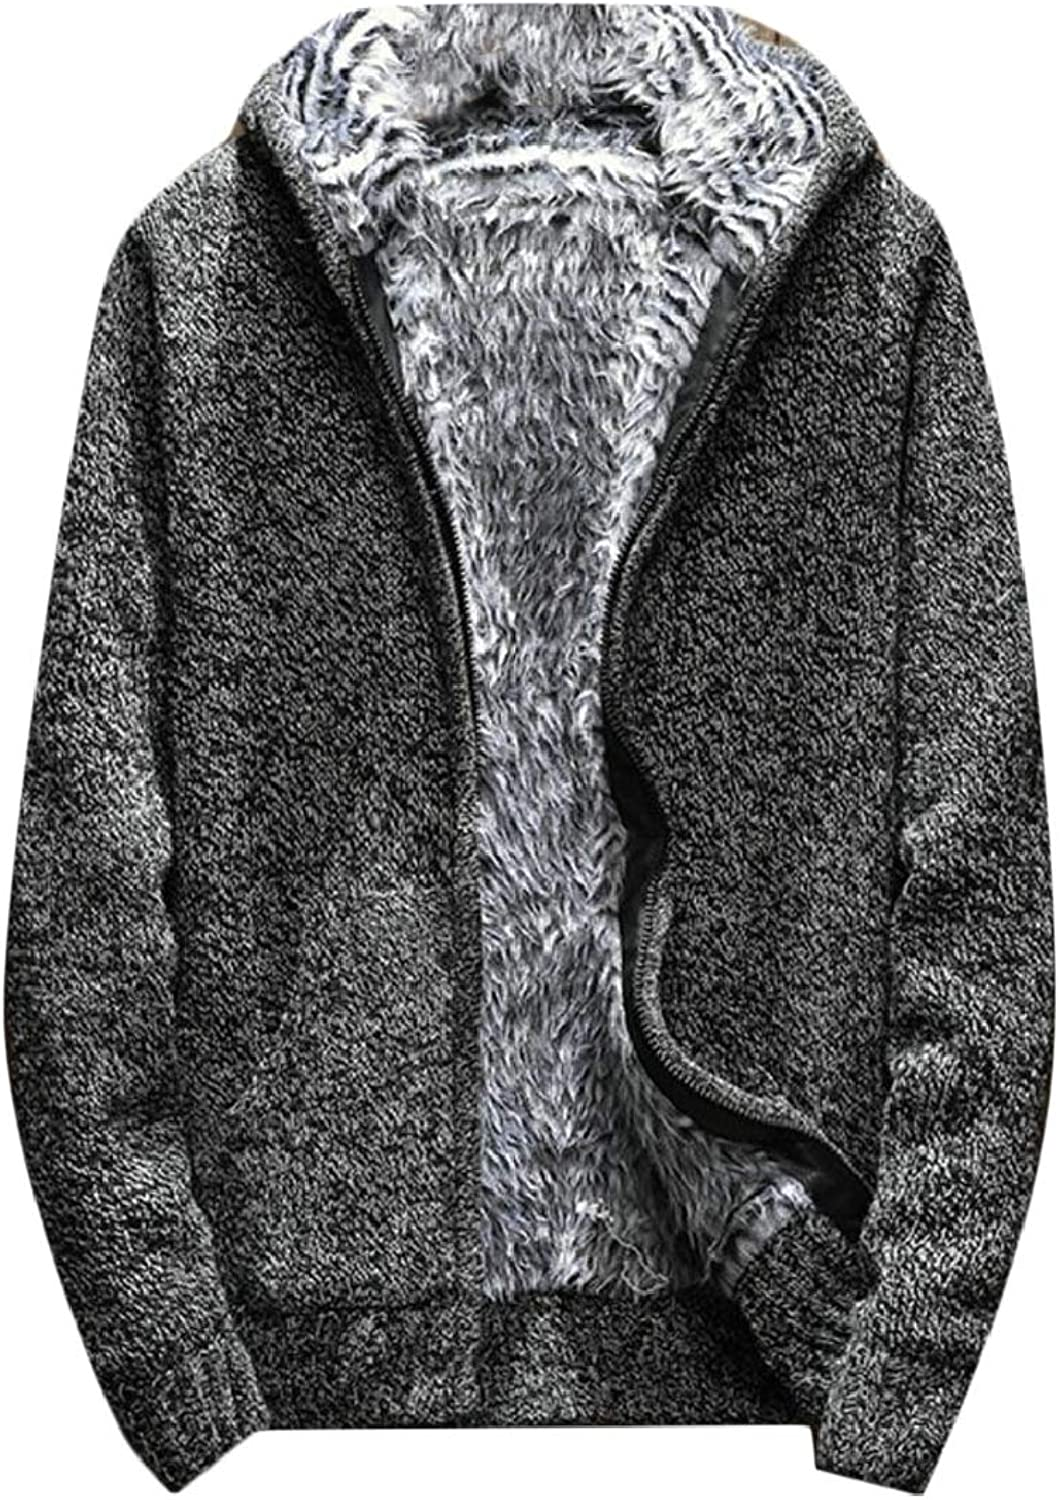 LKCEN-CA Mens Winter Zip up Warm Fleece Lined Solid Knitted Hoodie Jacket Sweaters